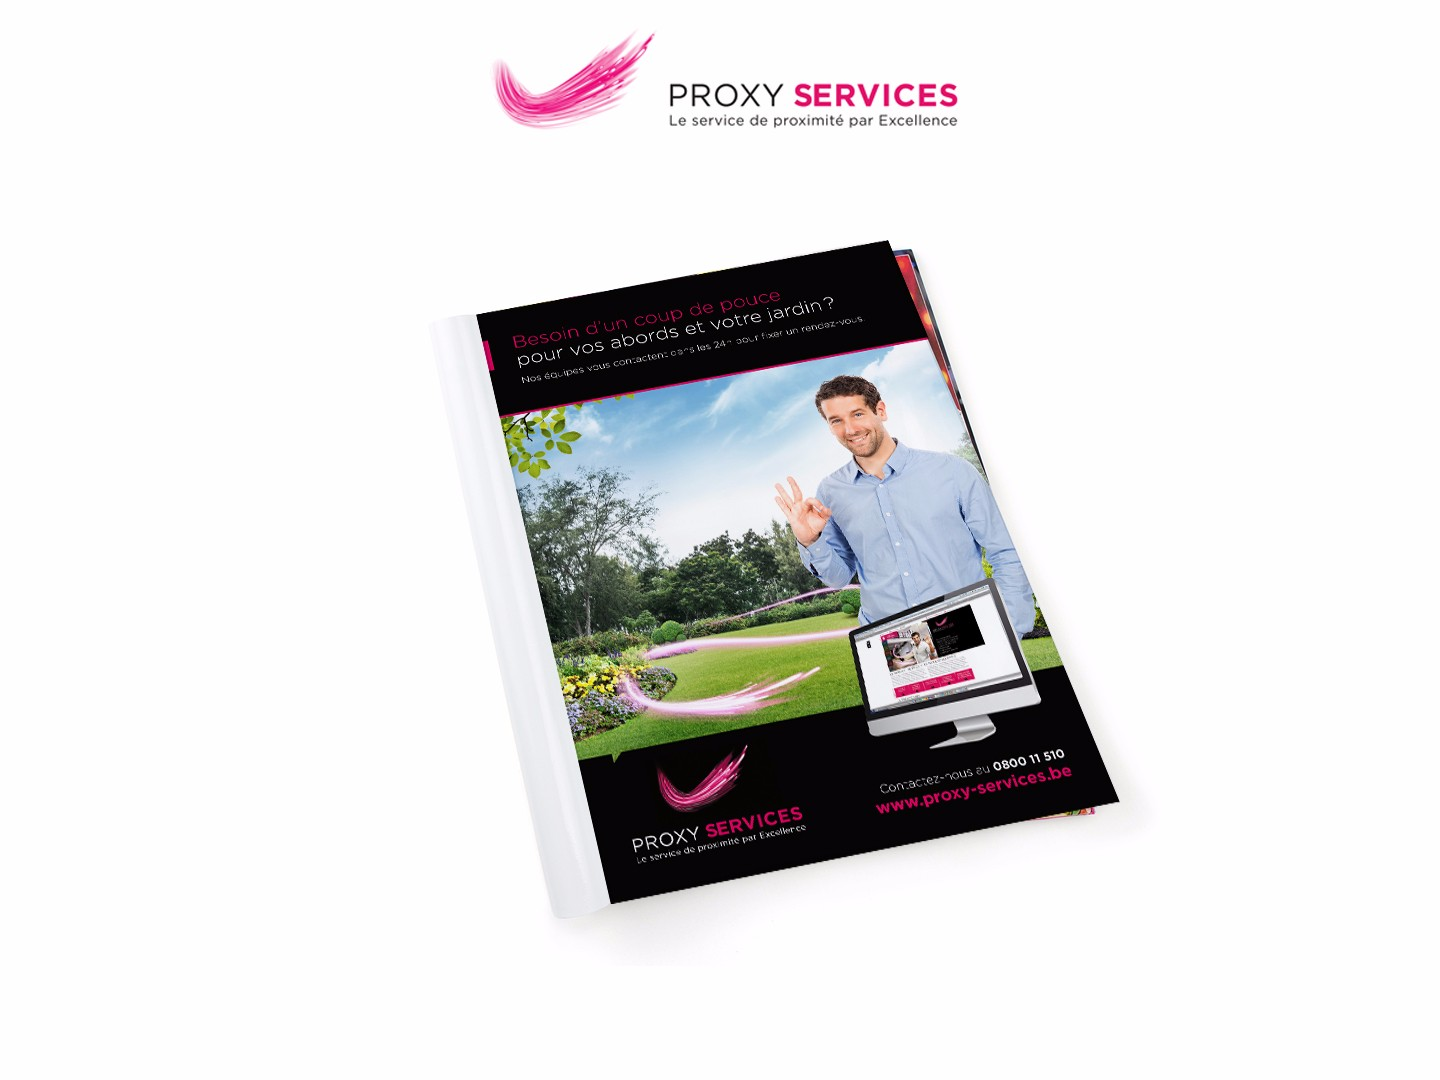 Lusis_ProxyService3_Site